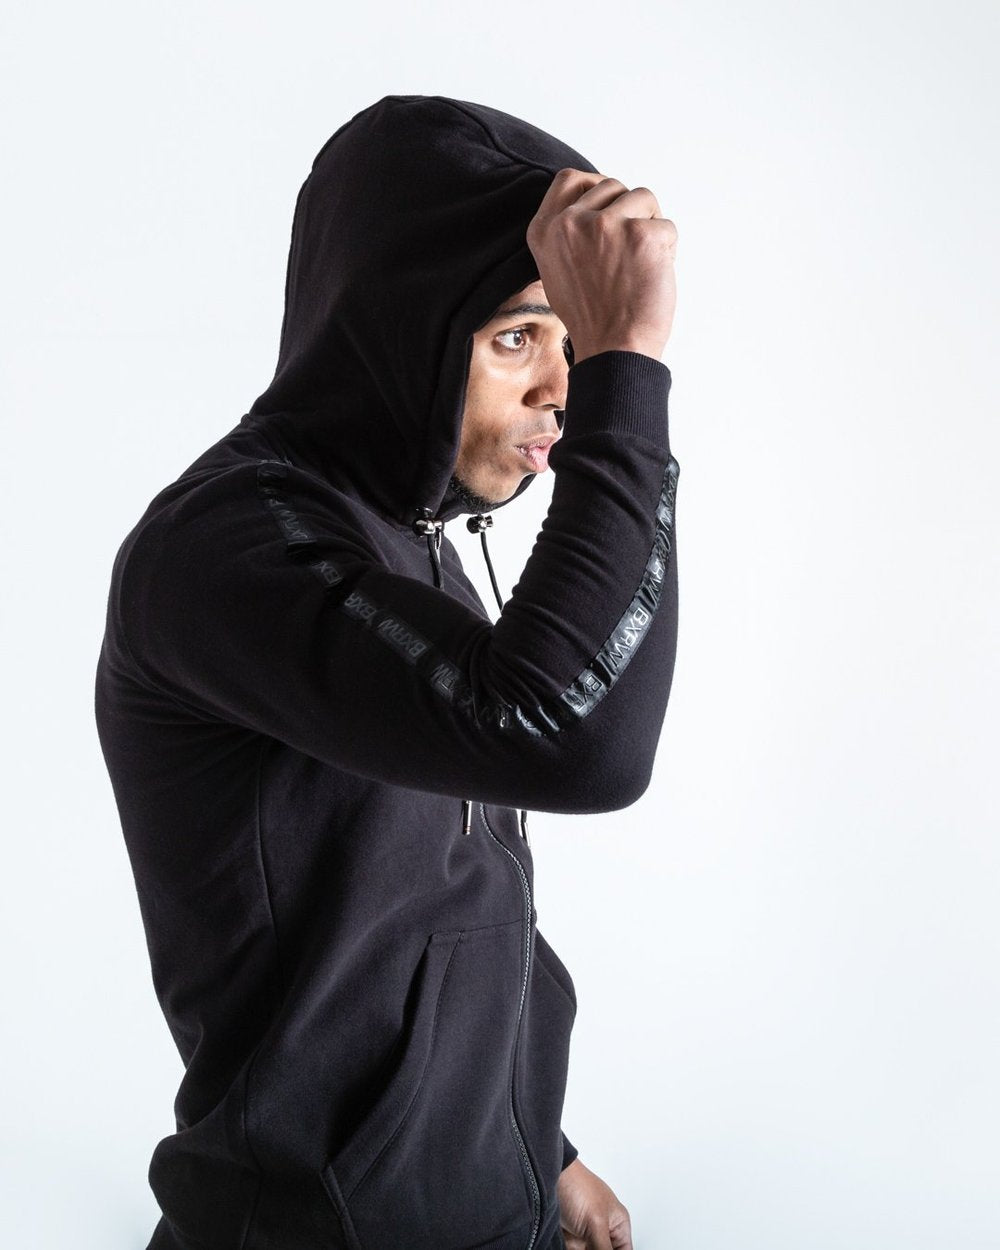 MARCIANO HOODIE - BLACK - Pandemic Fight Gear Inc.